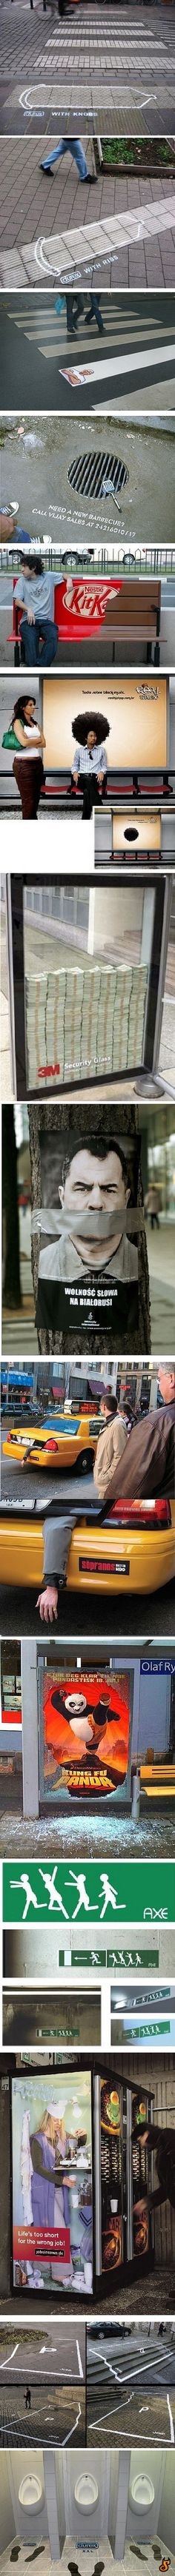 Goeie outdoor-marketing